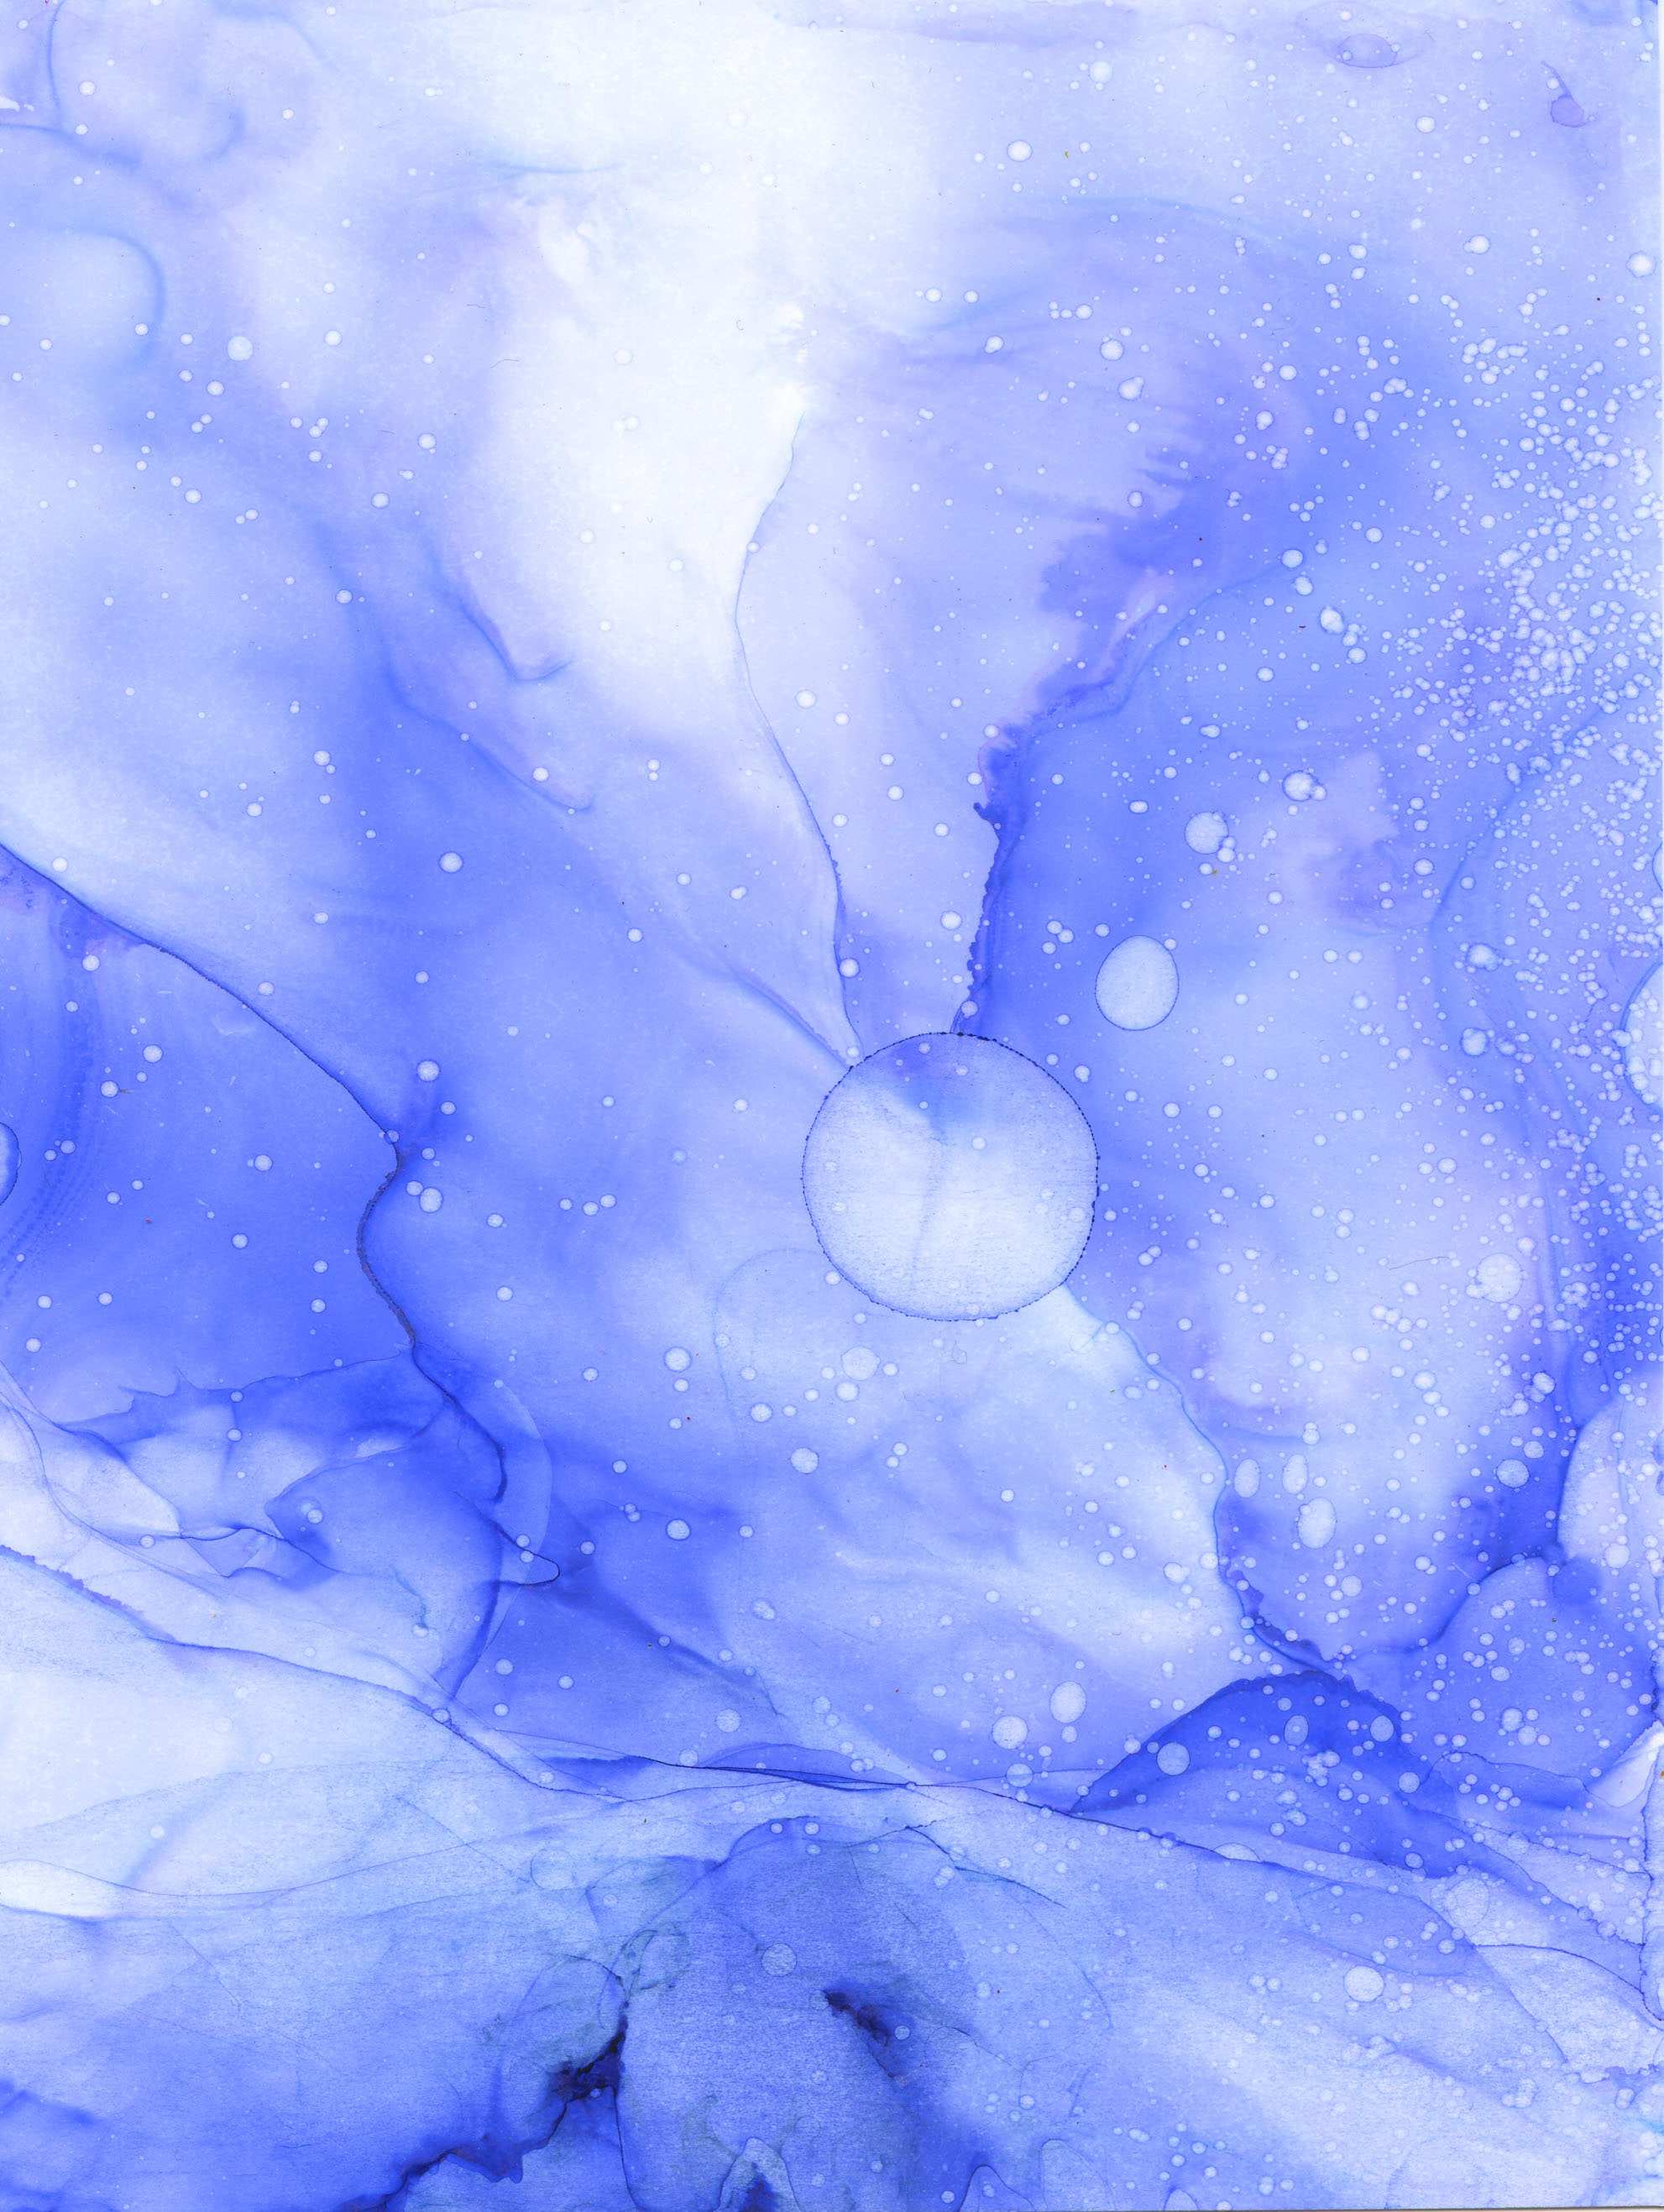 Connor's Blue Moon - Alcohol Ink - 5 X 6 - Sold - Print Available